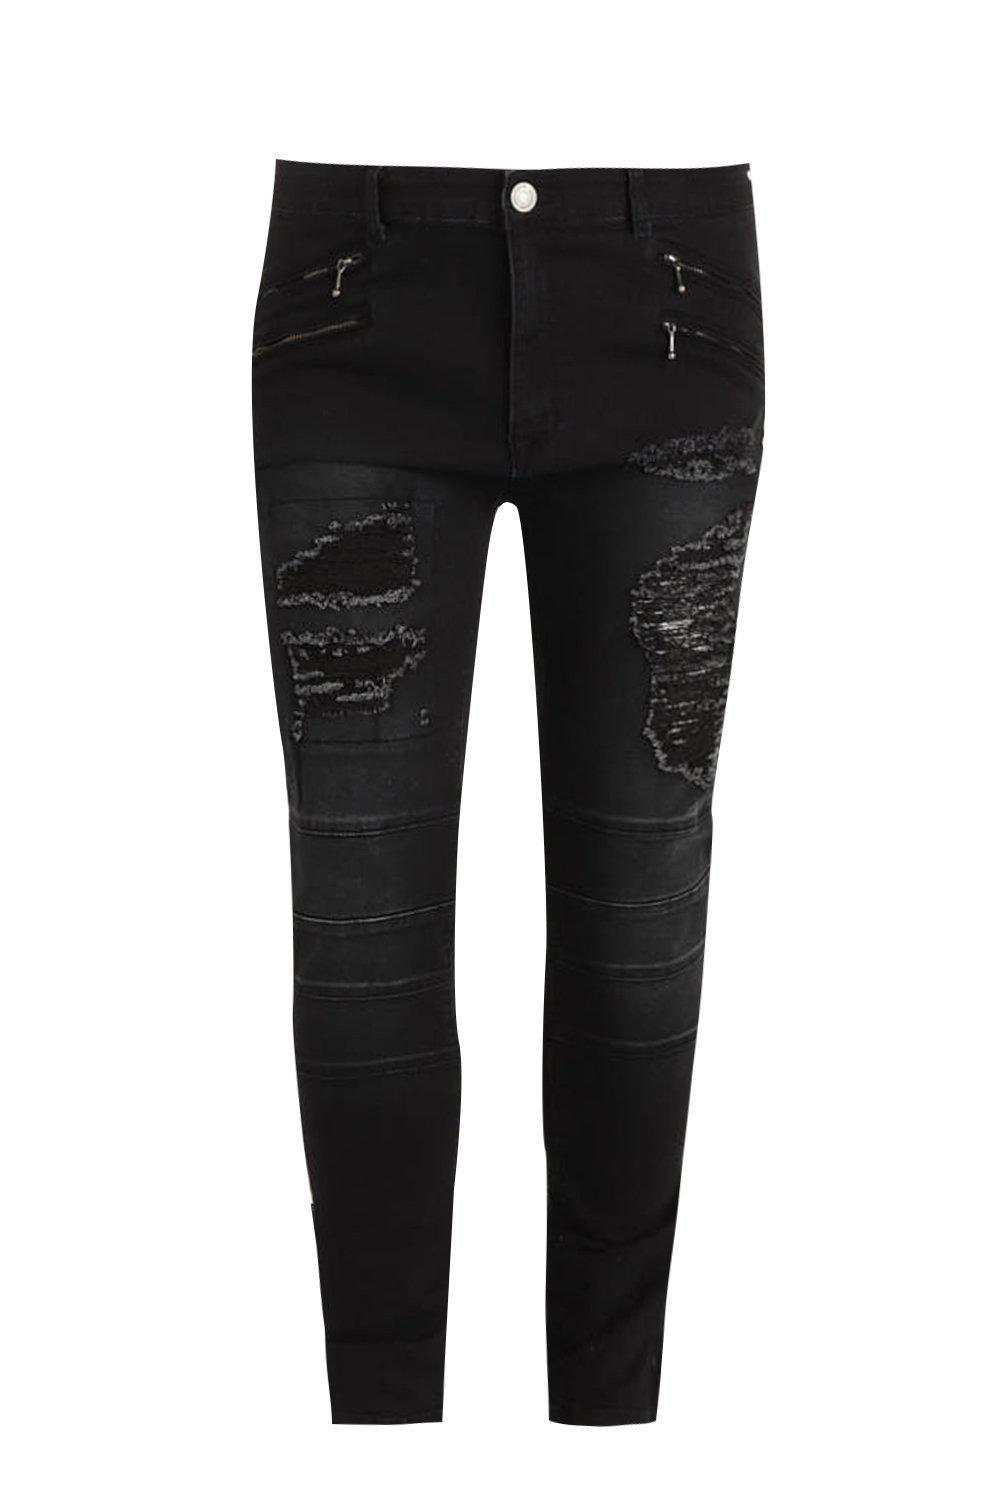 Boohoo Denim Big And Tall Skinny Fit Panelled Ripped Jeans in Black for Men